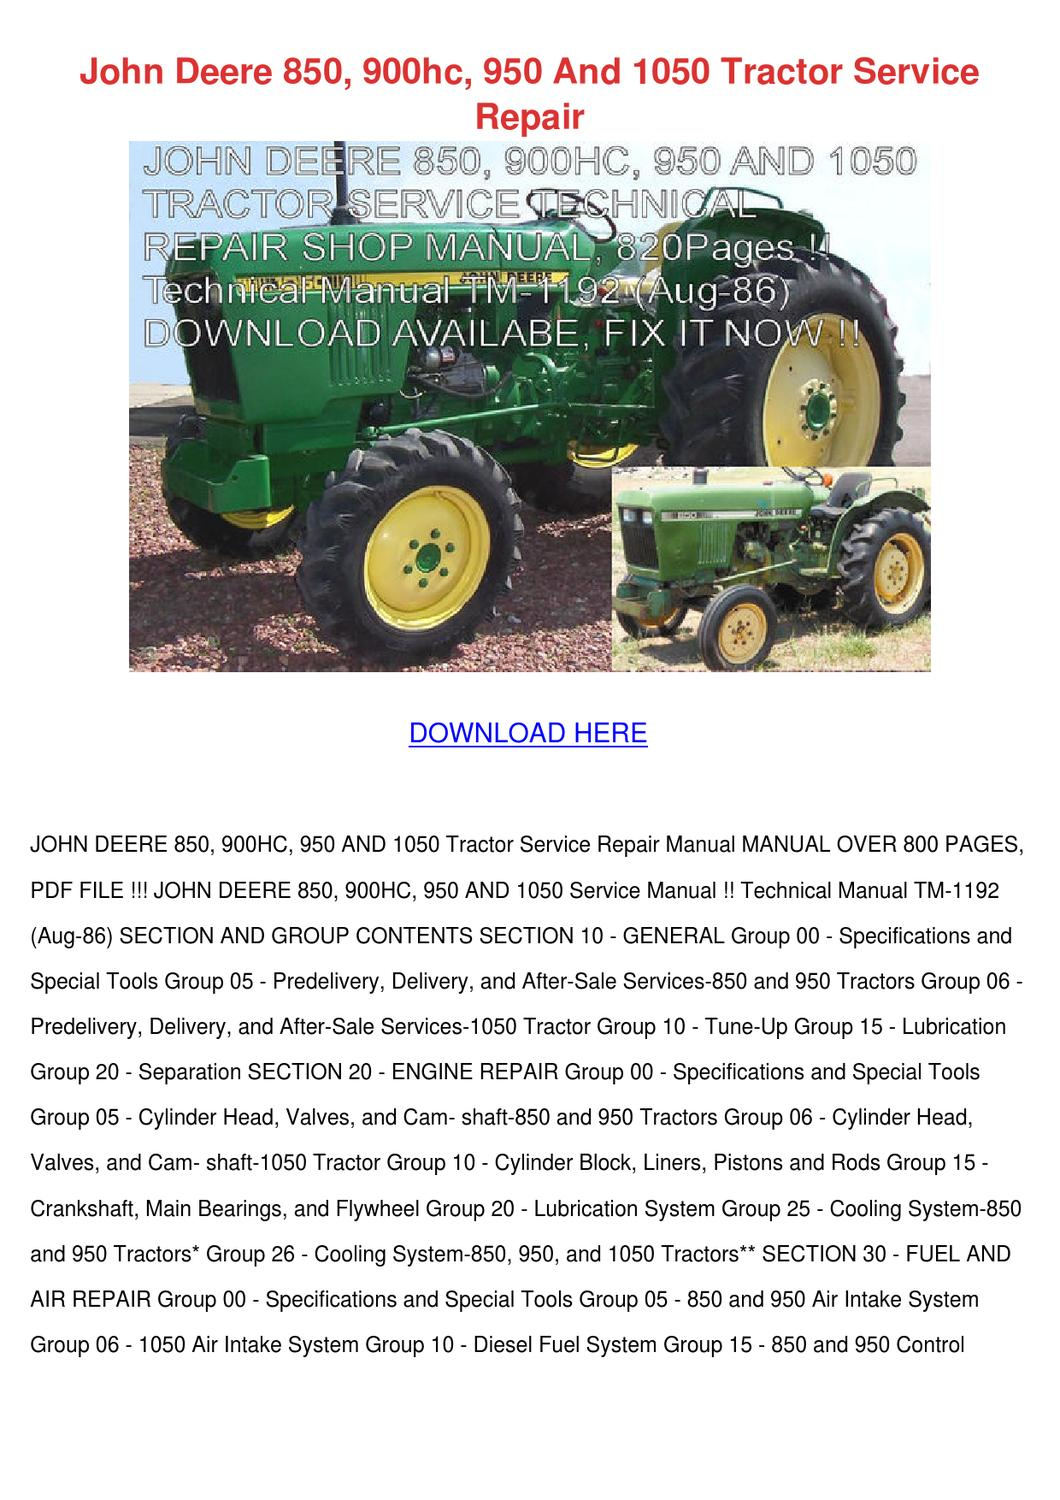 John Deere 850 900hc 950 And 1050 Tractor Ser By Marionklein Issuu Gt242 Wiring Diagram